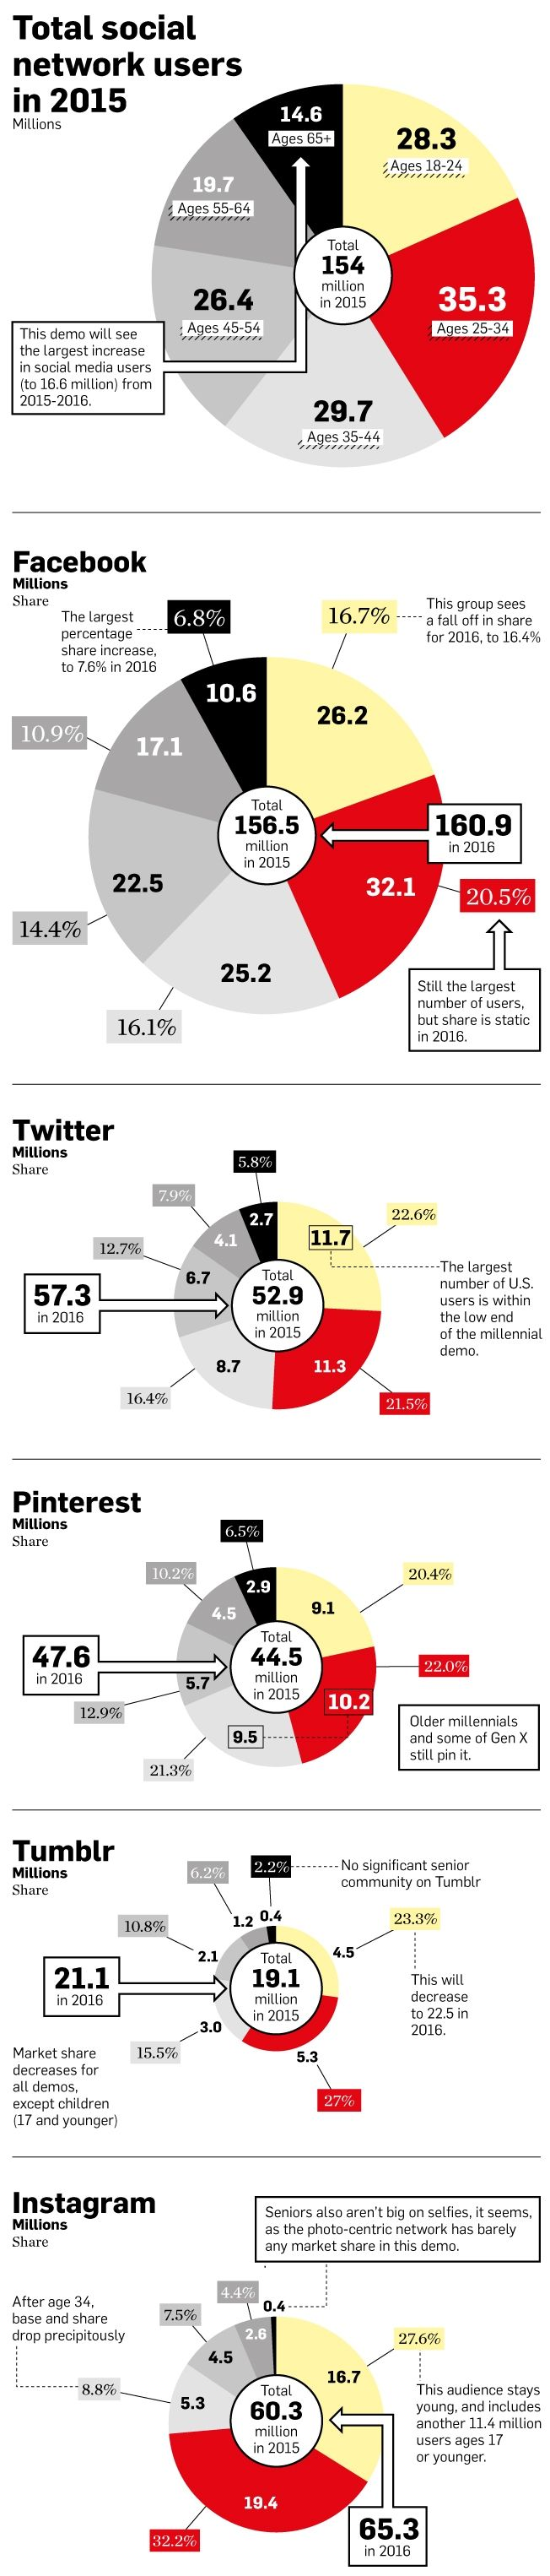 social-network-users-2015-infographic2